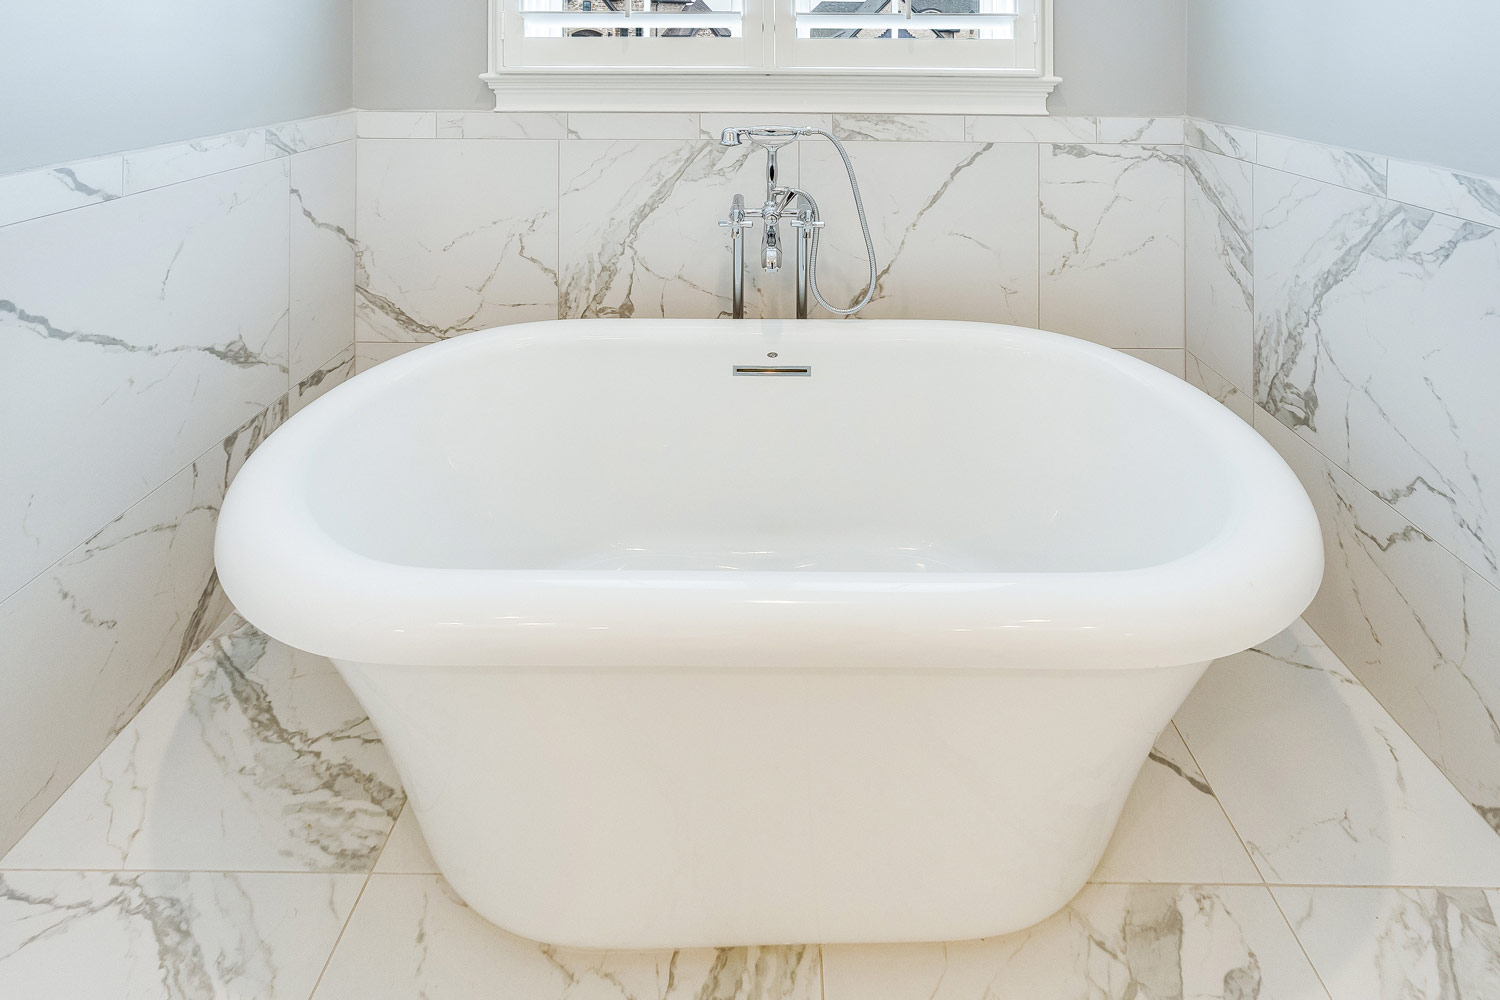 The master suite has a freestanding tub with polished chrome tub filler